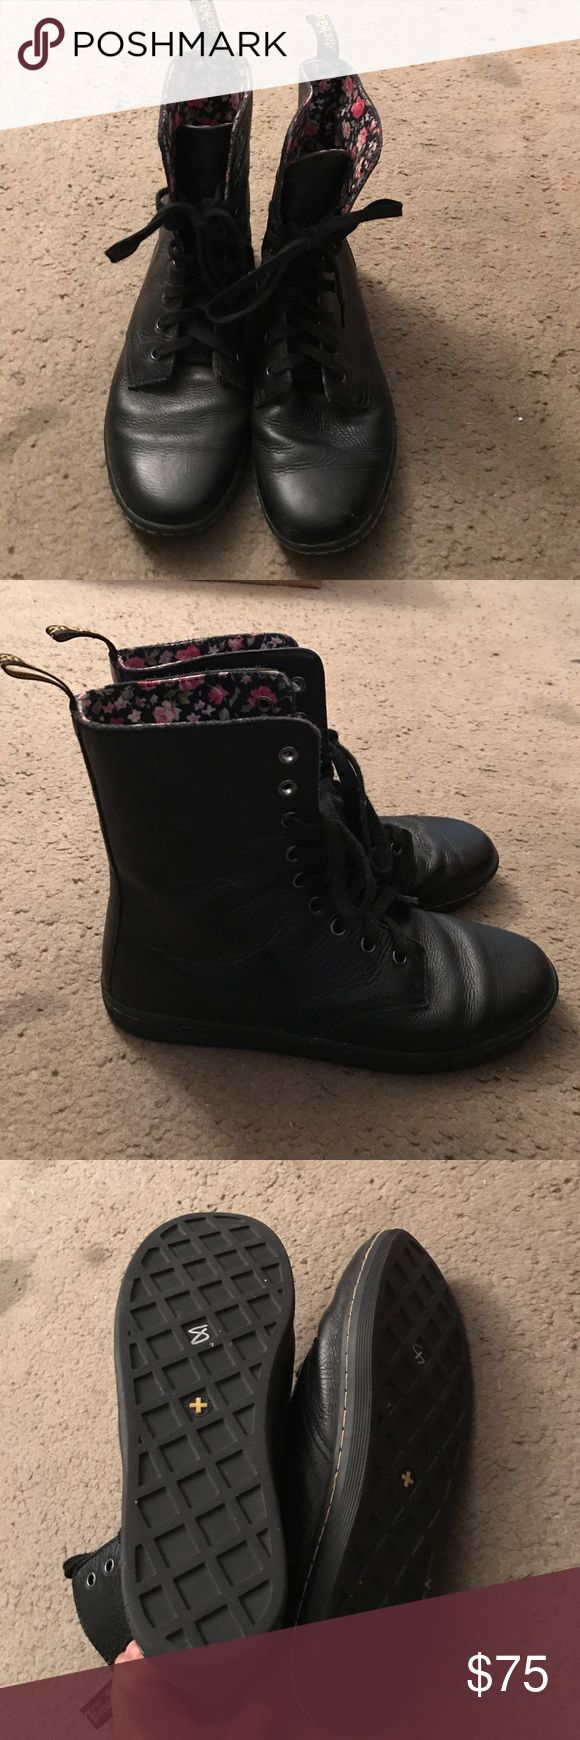 Dr. martens black boots They are in great condition only worn once has flowers on inside so size 9 in us I believe dr martens Shoes Ankle Boots & Booties